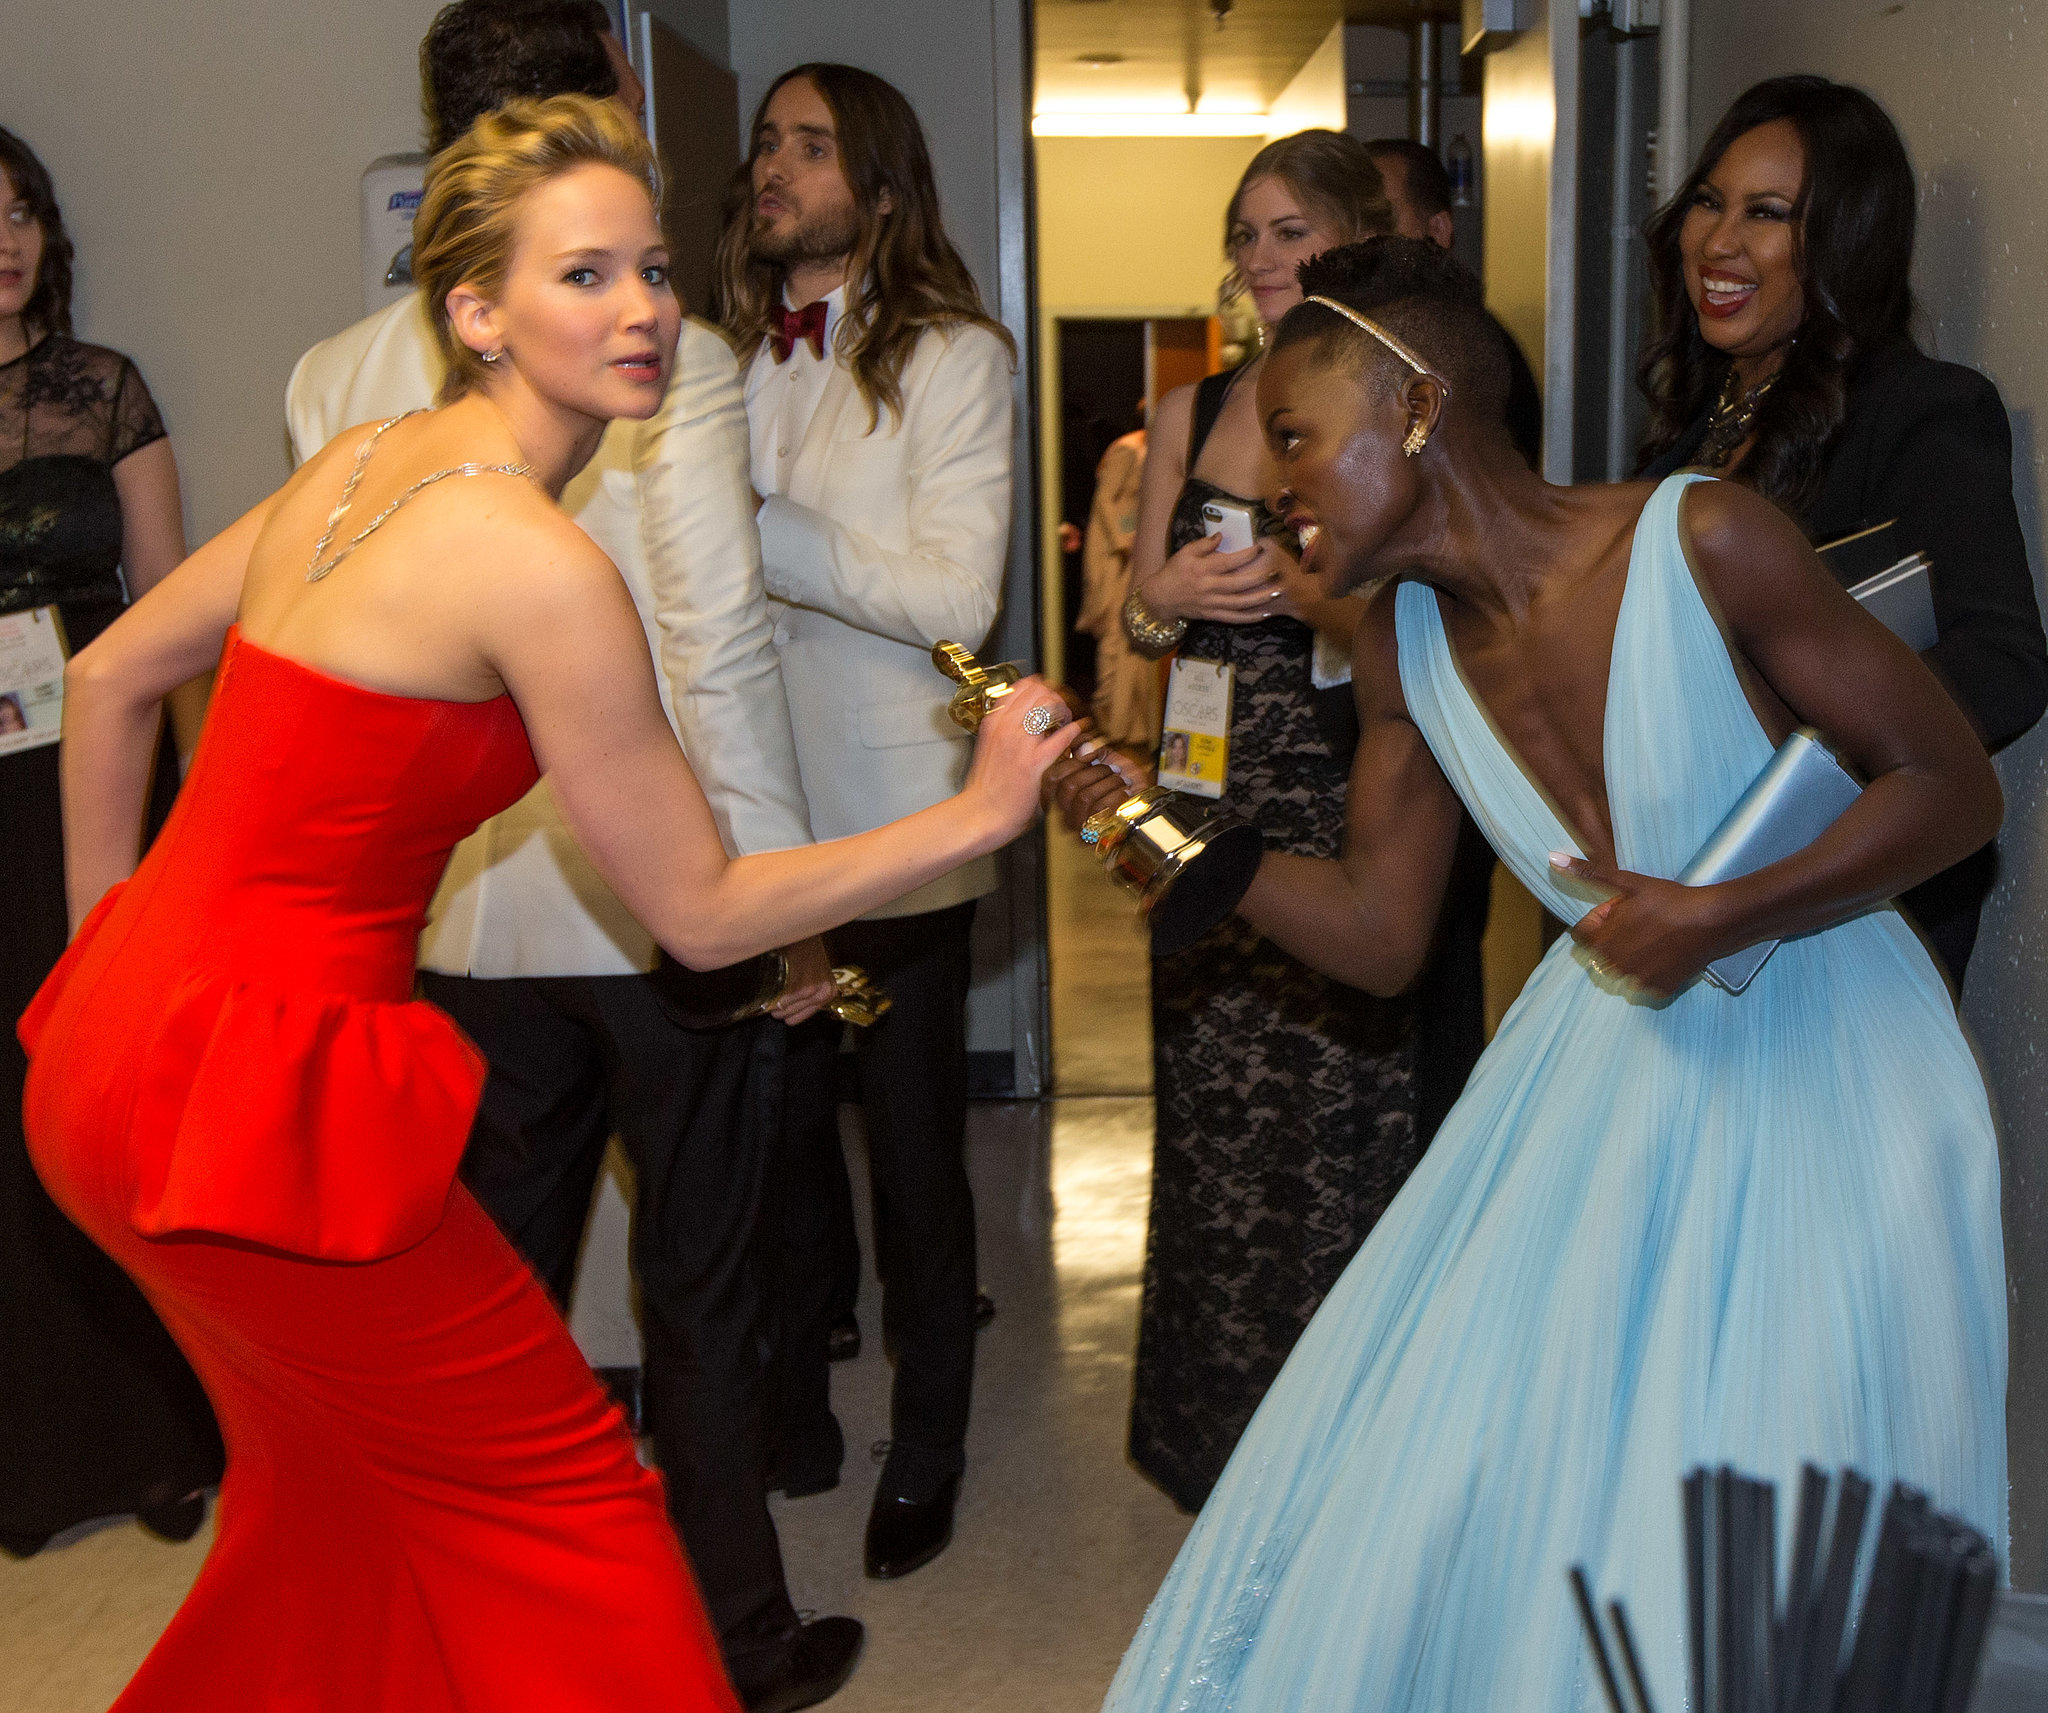 Jennifer Lawrence got grabby backstage when she tried to take L